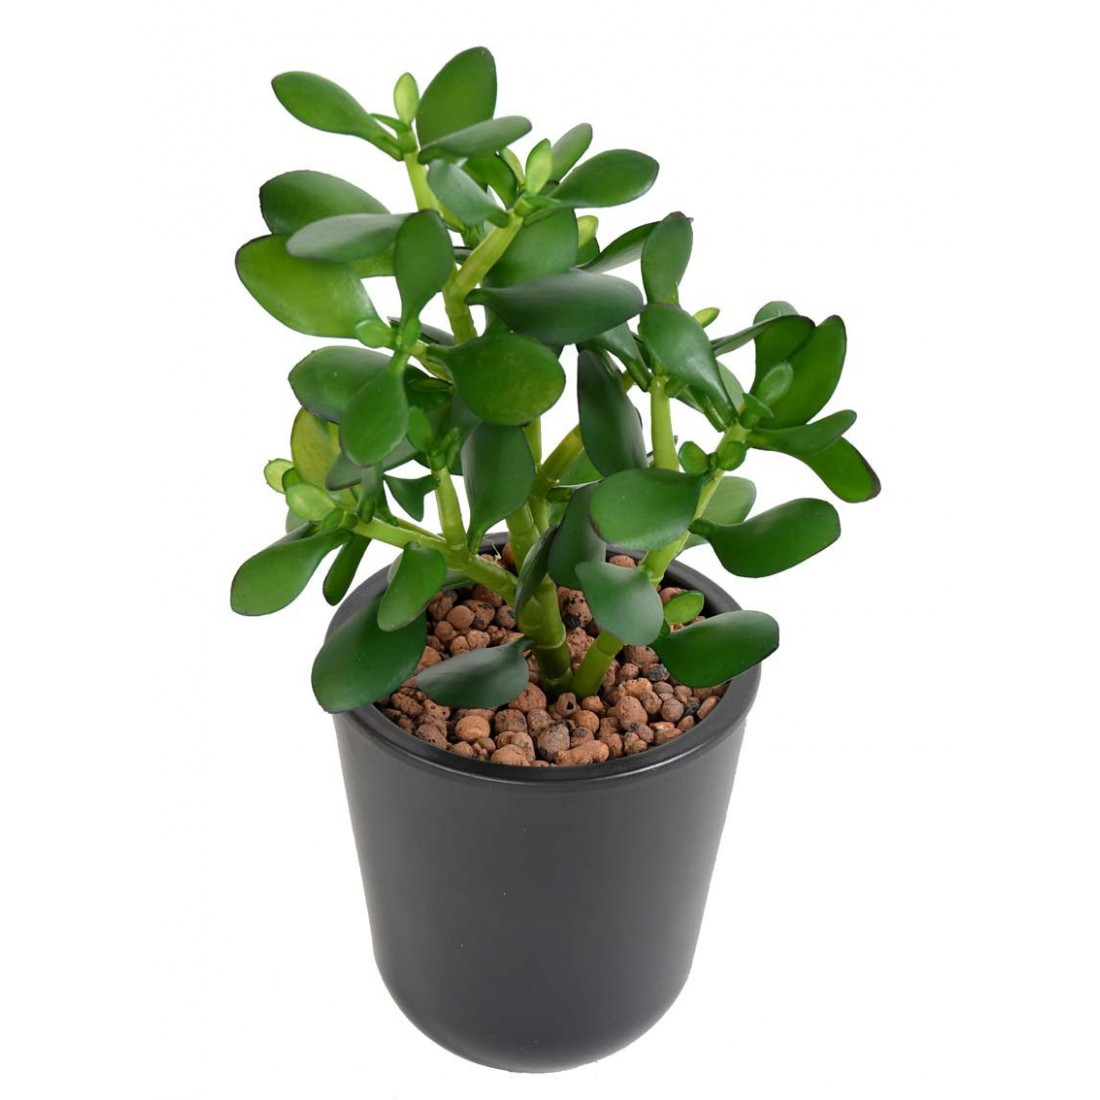 crassula artificiel jade 30cm cactus plantes grasses mini cactus et plantes grasses. Black Bedroom Furniture Sets. Home Design Ideas